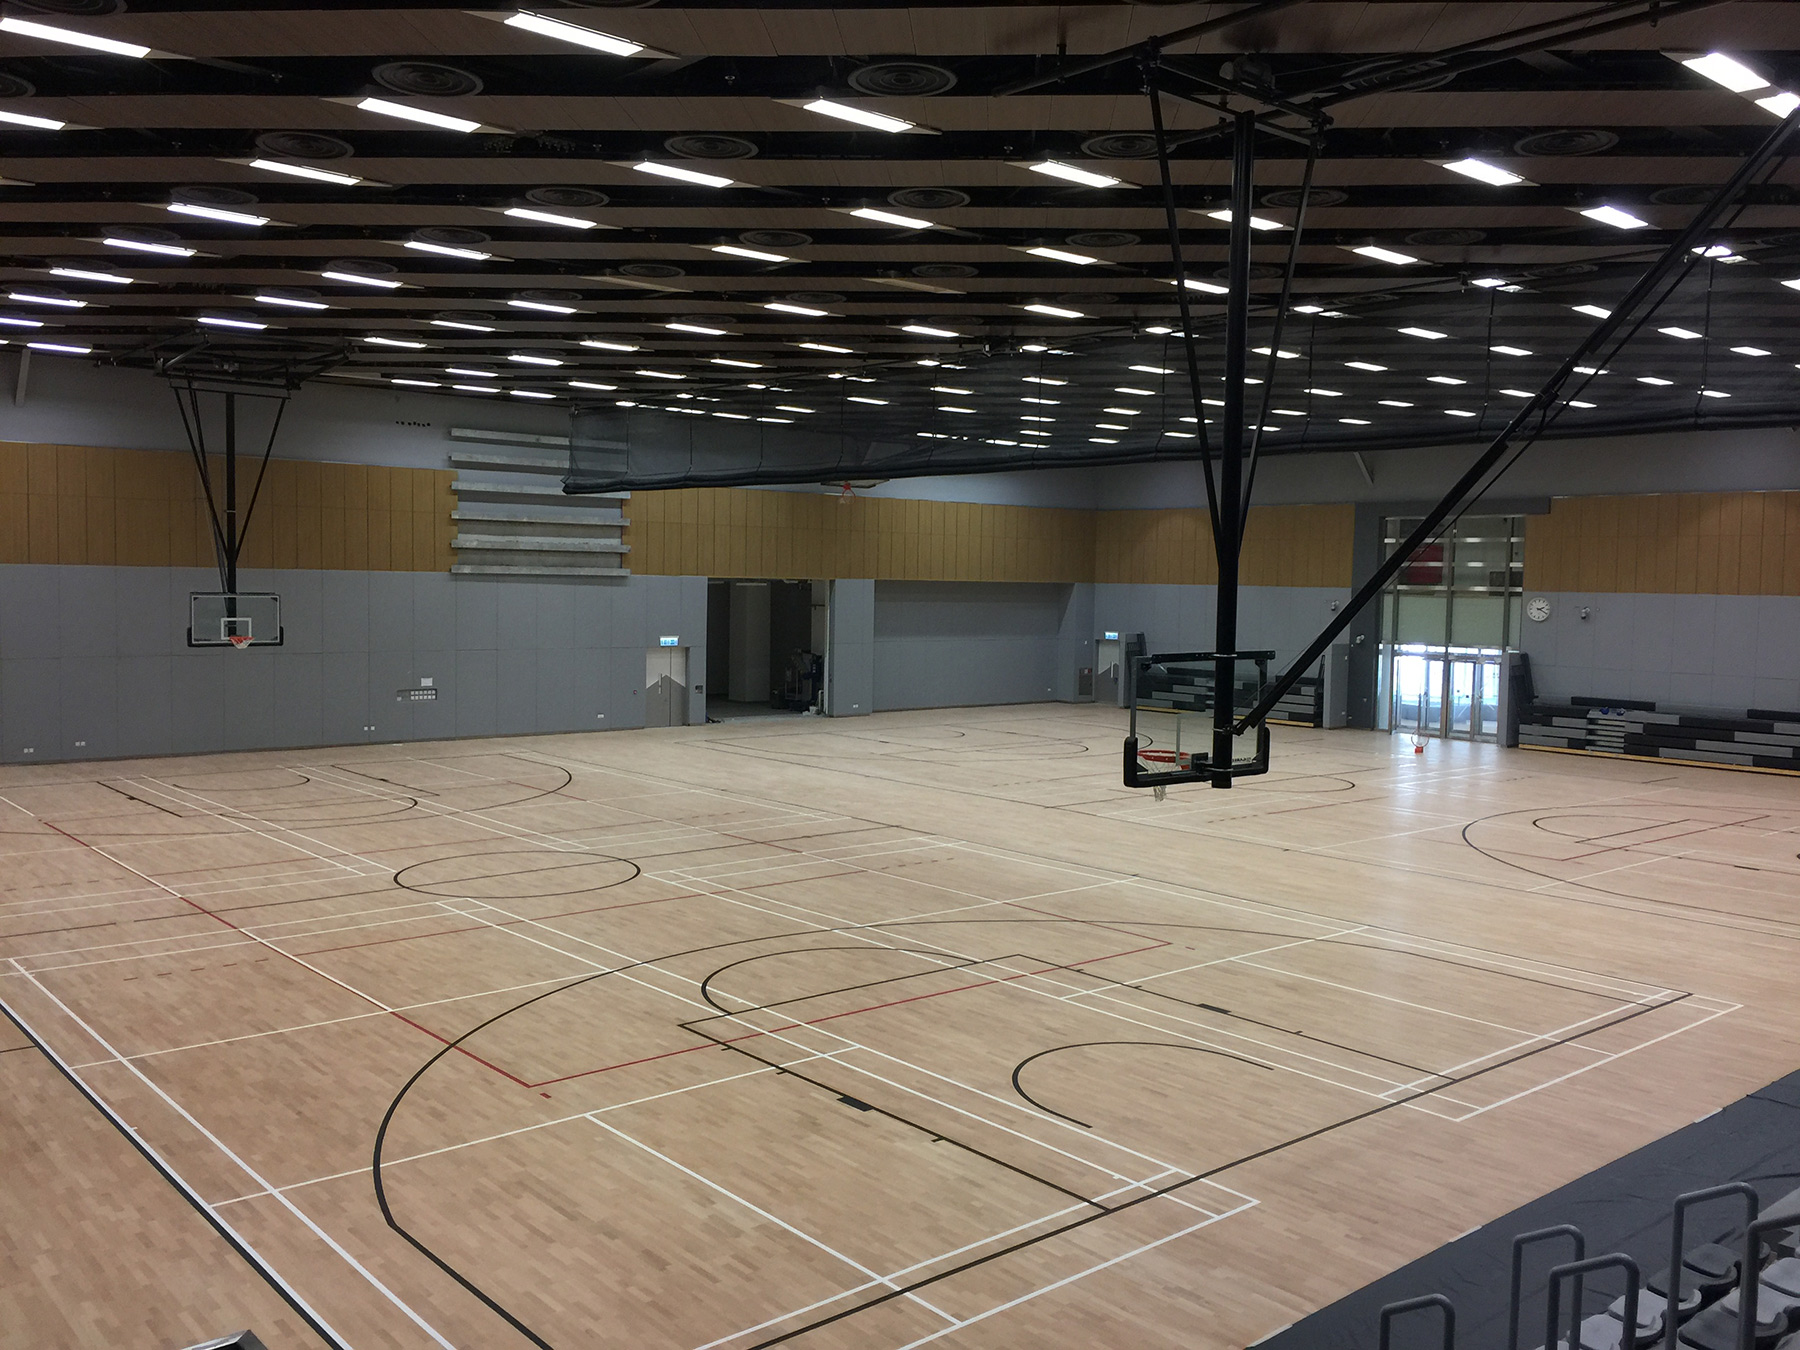 guide ceiling basketball indoor covering tiled floor flooring wooden apron court to and in white com colored impressive wall tips floors with hana